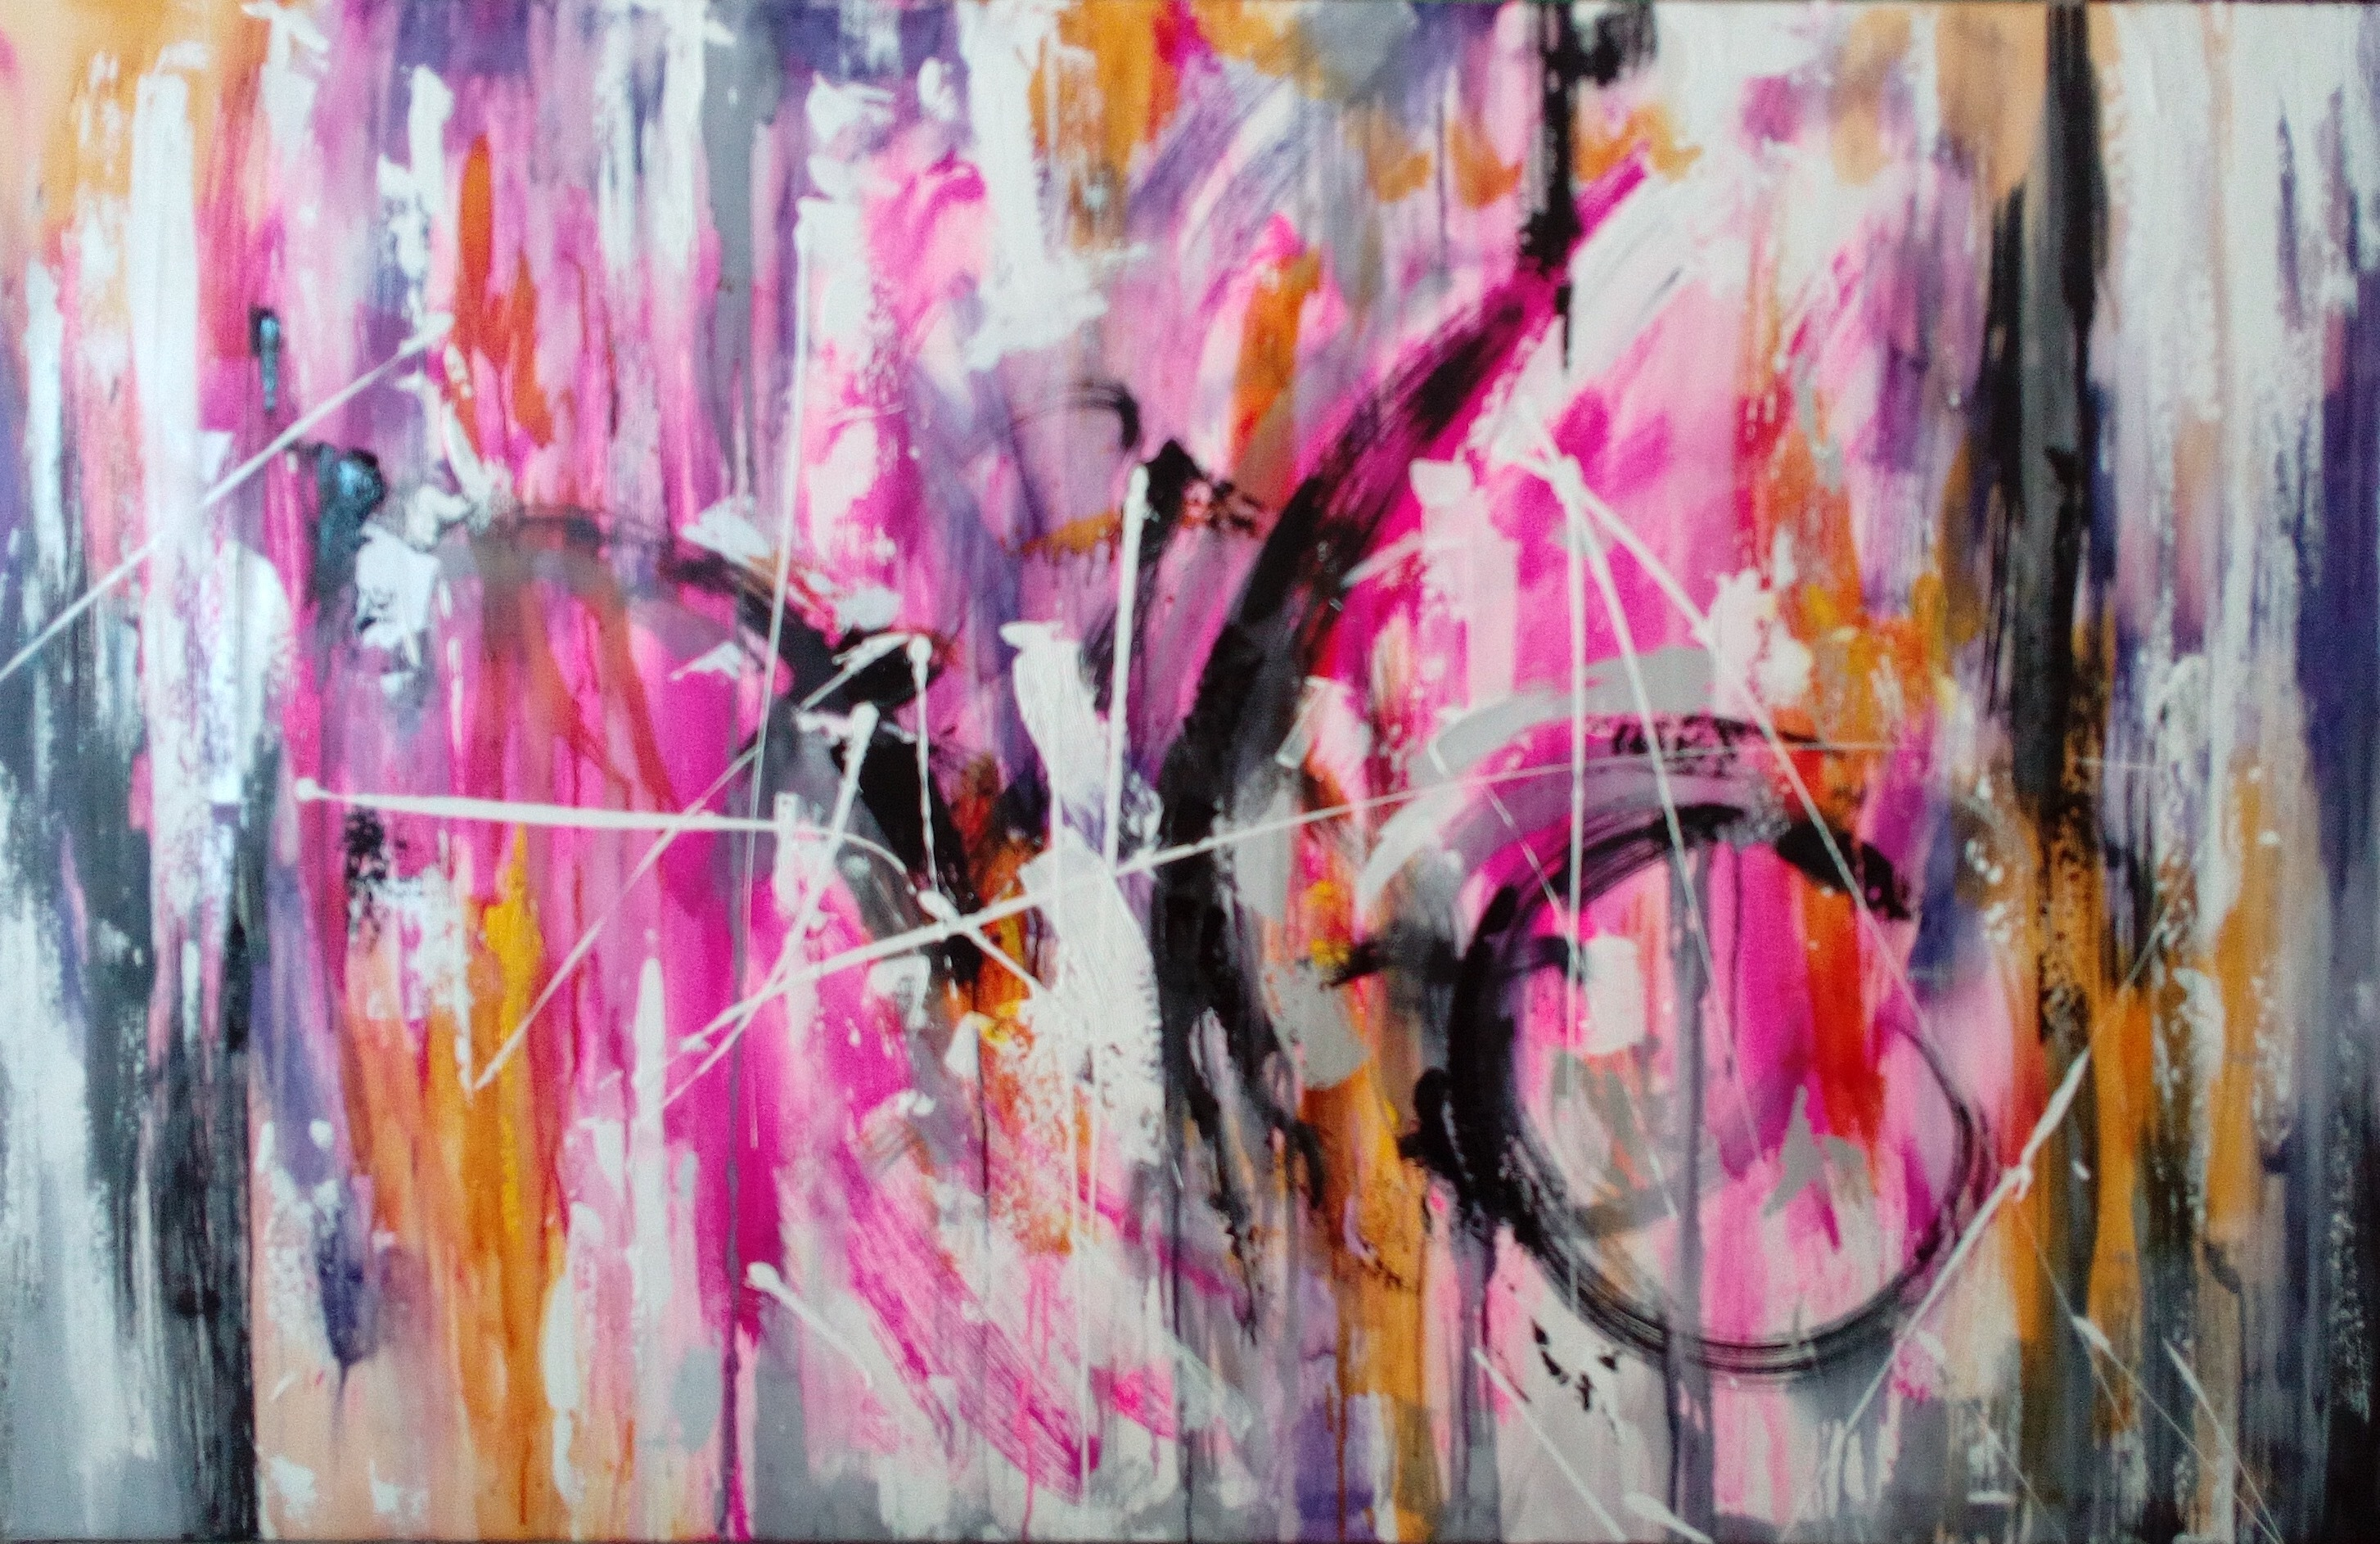 SP009-Colorful abstract painting painted by hand in magenta tones with texture